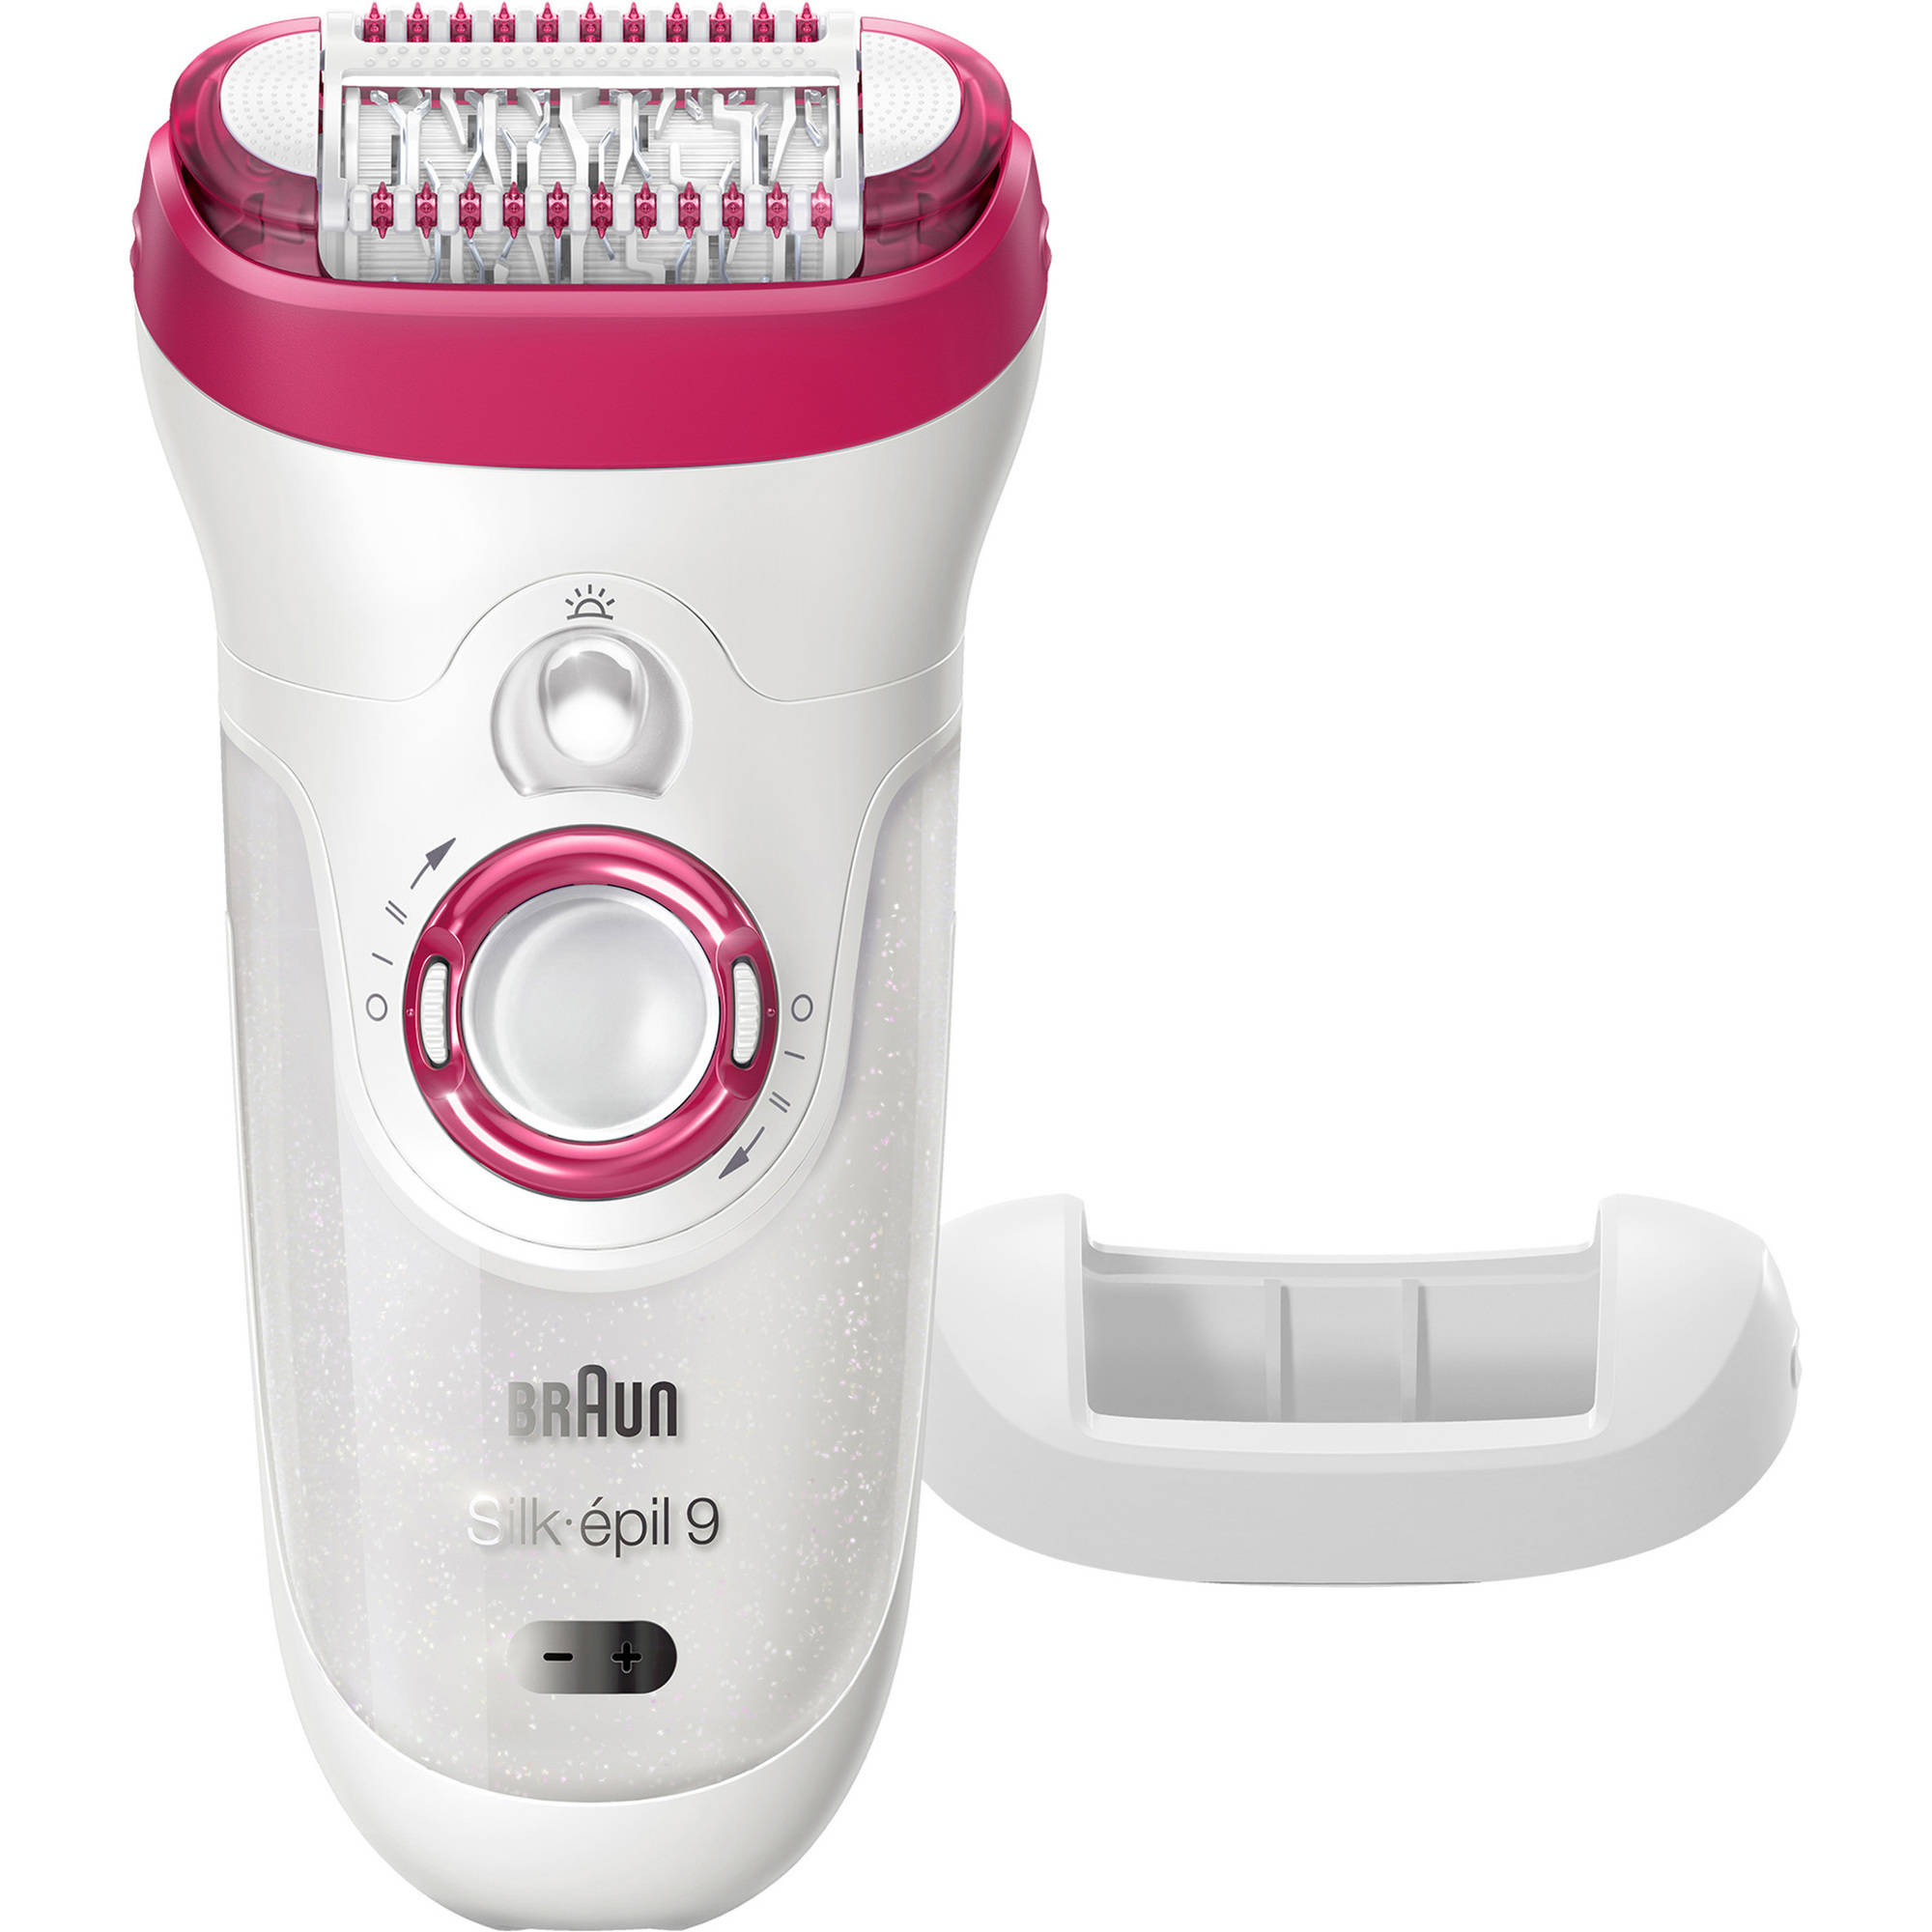 Braun Silk-epil 9 9-521 Wet & Dry Cordless Epilator